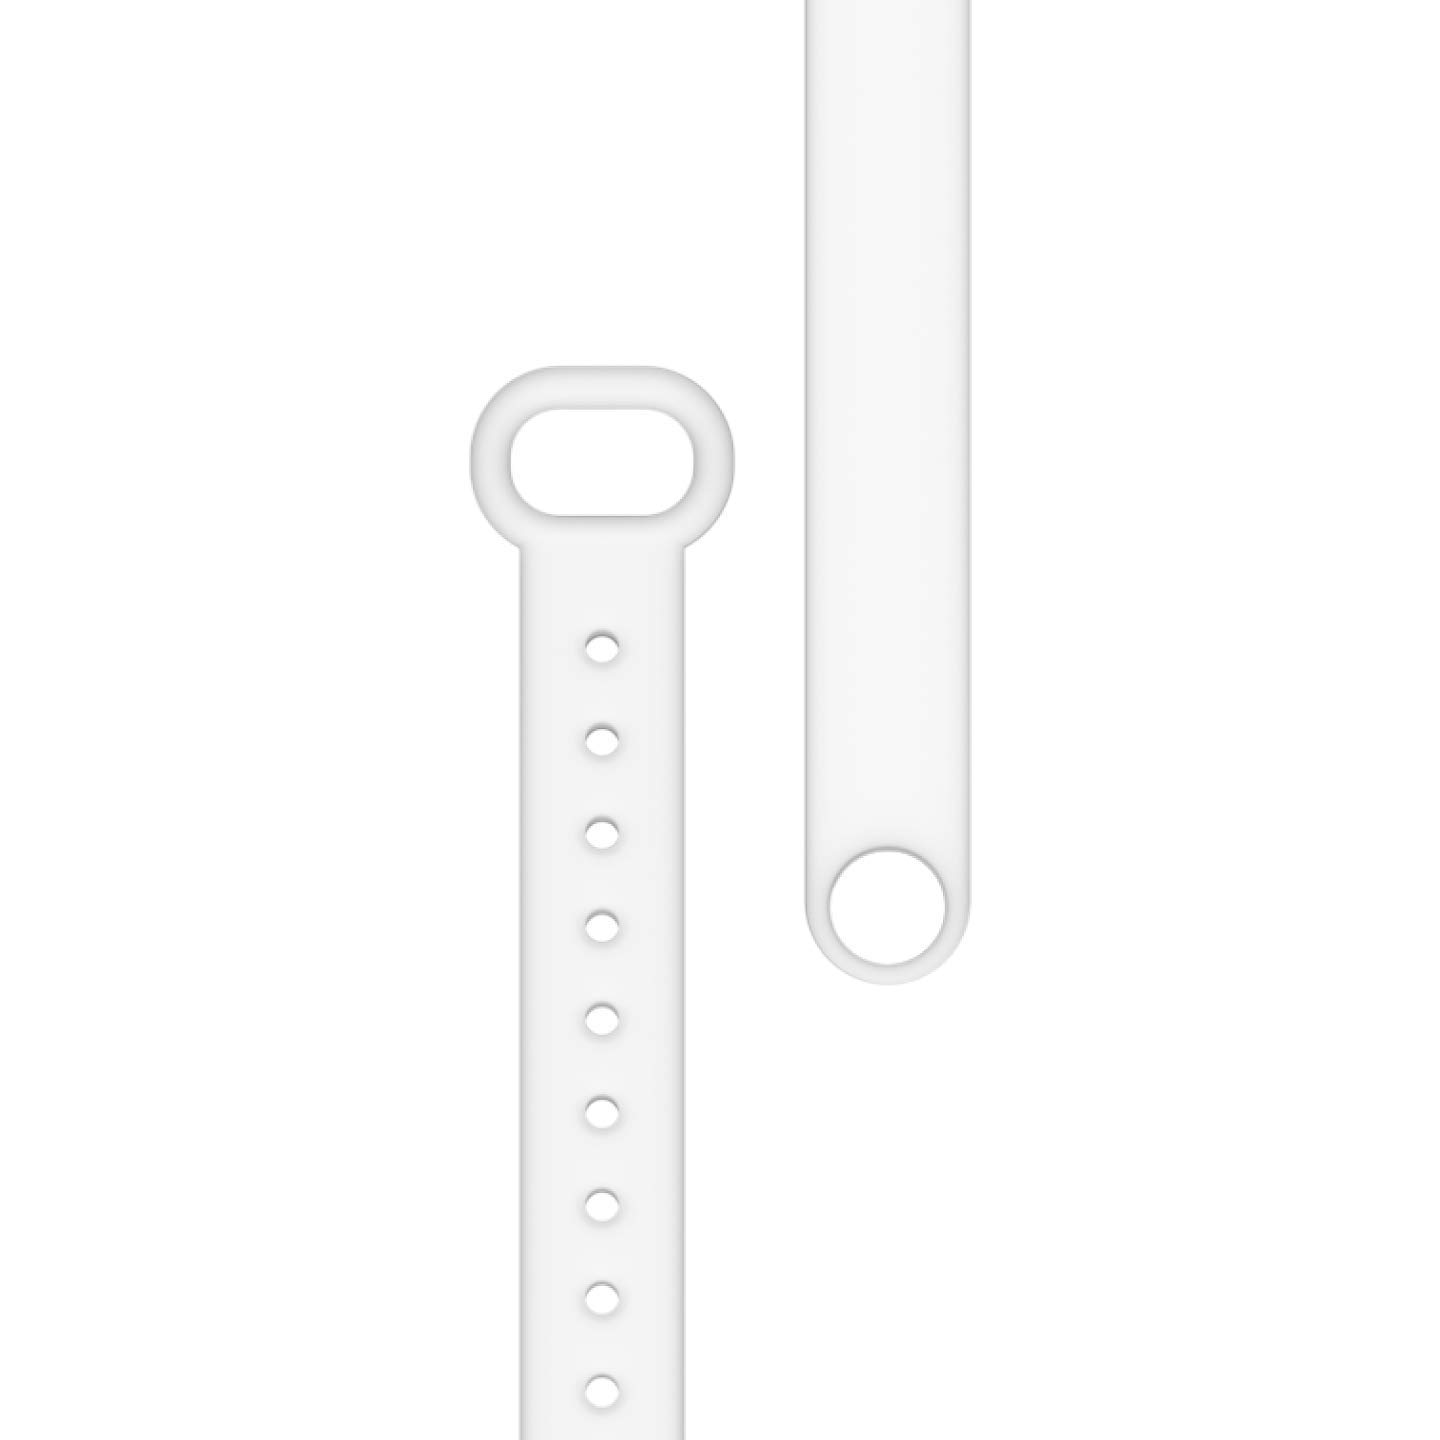 Bond Touch Sports Band - Ghost White - Accessory for Your Bond Touch